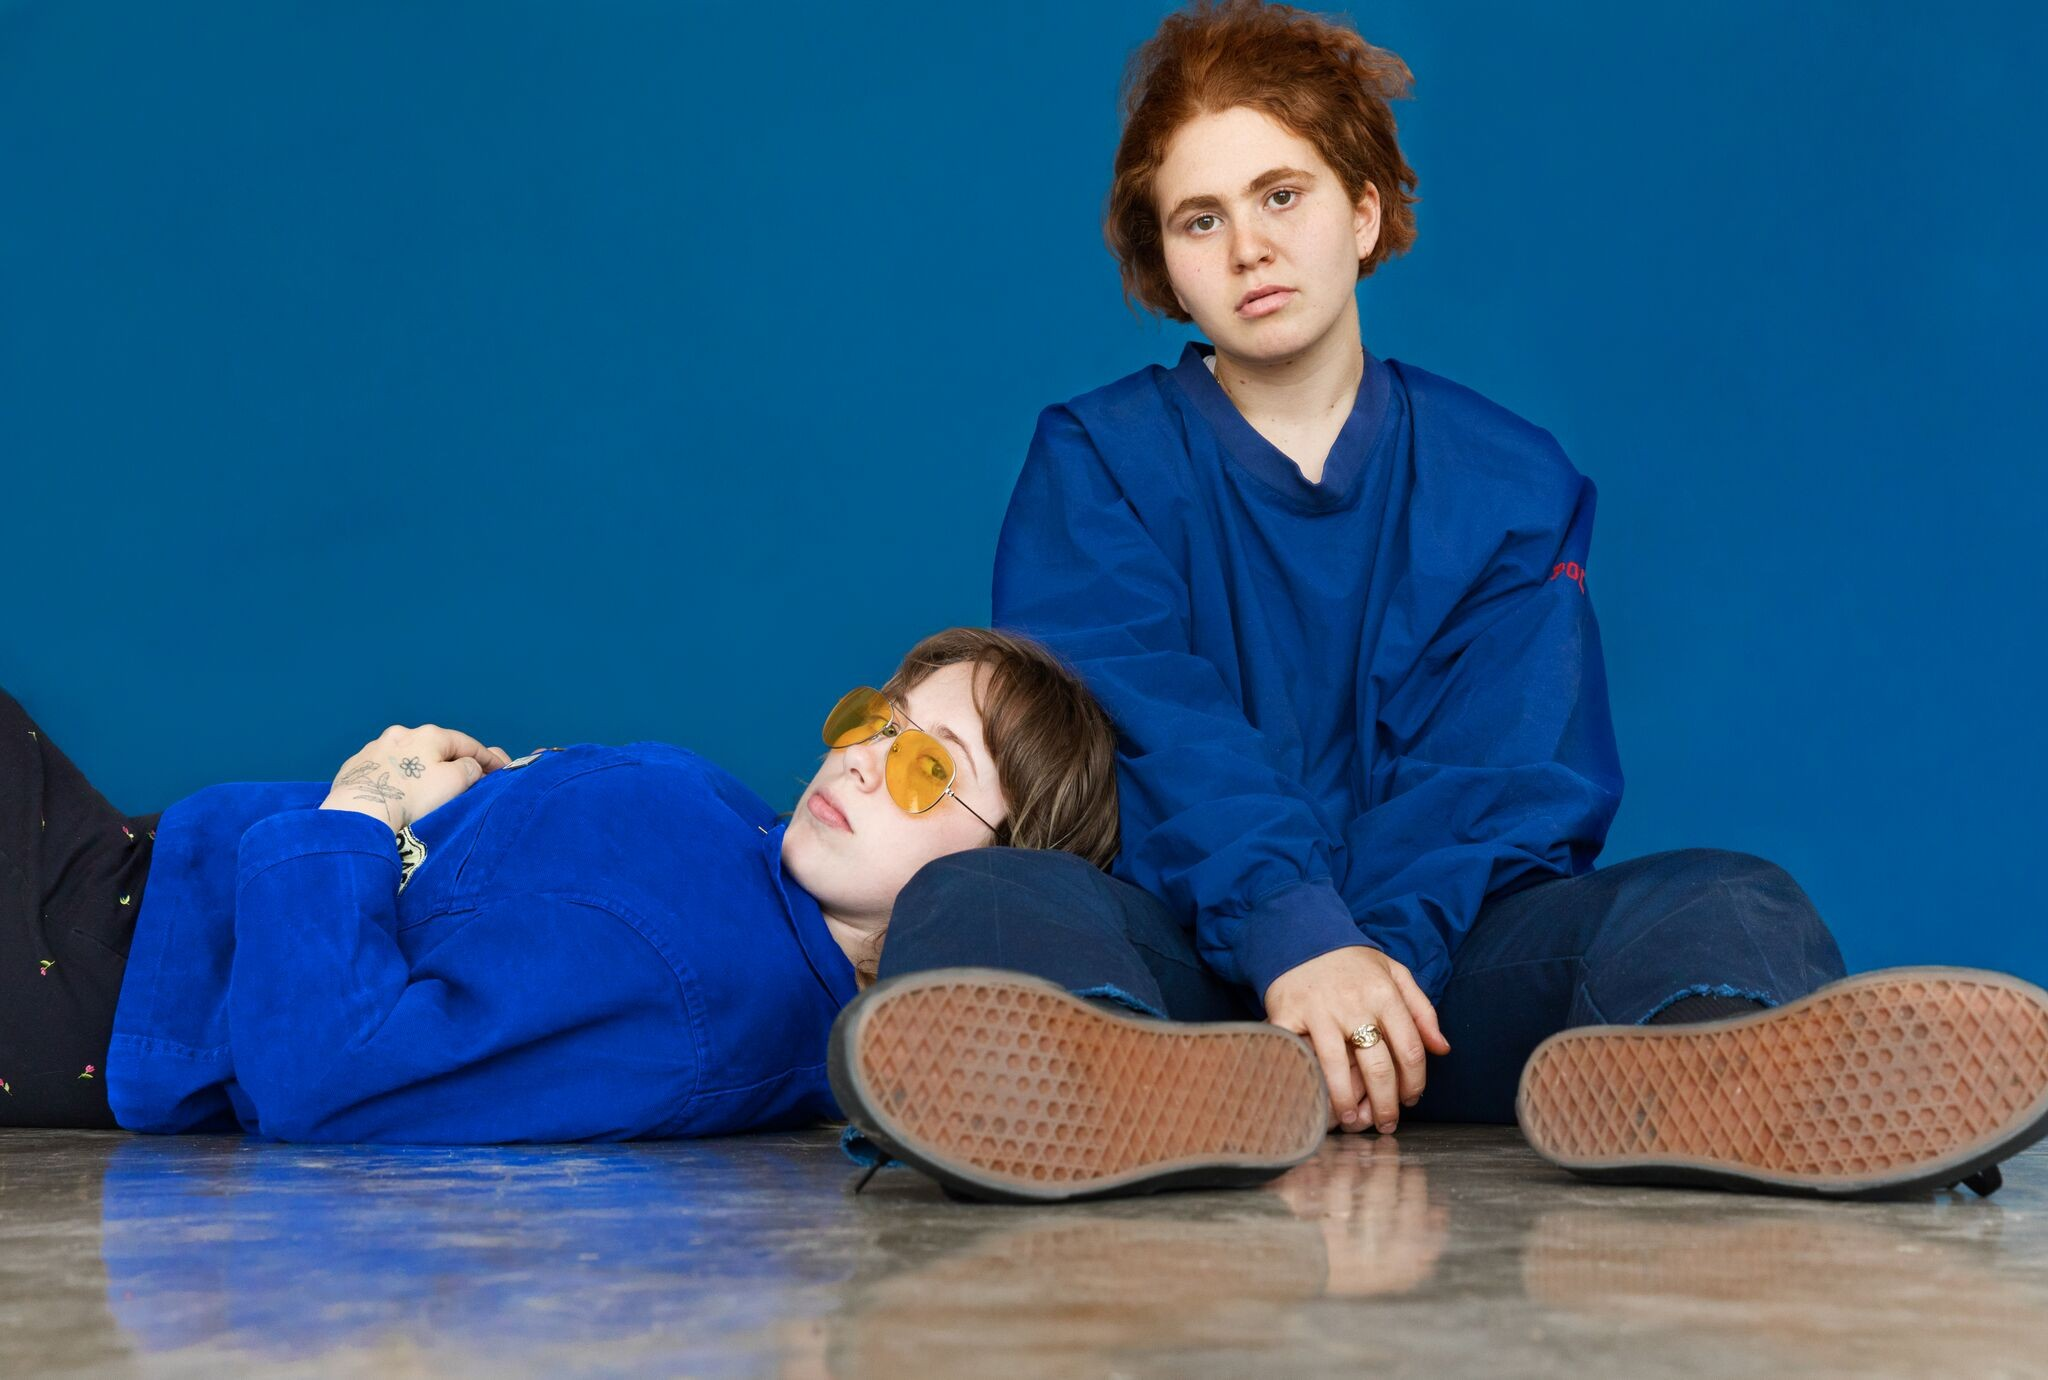 Girlpool's music has become more complex and mature this past year. (Image via LA Weekly)